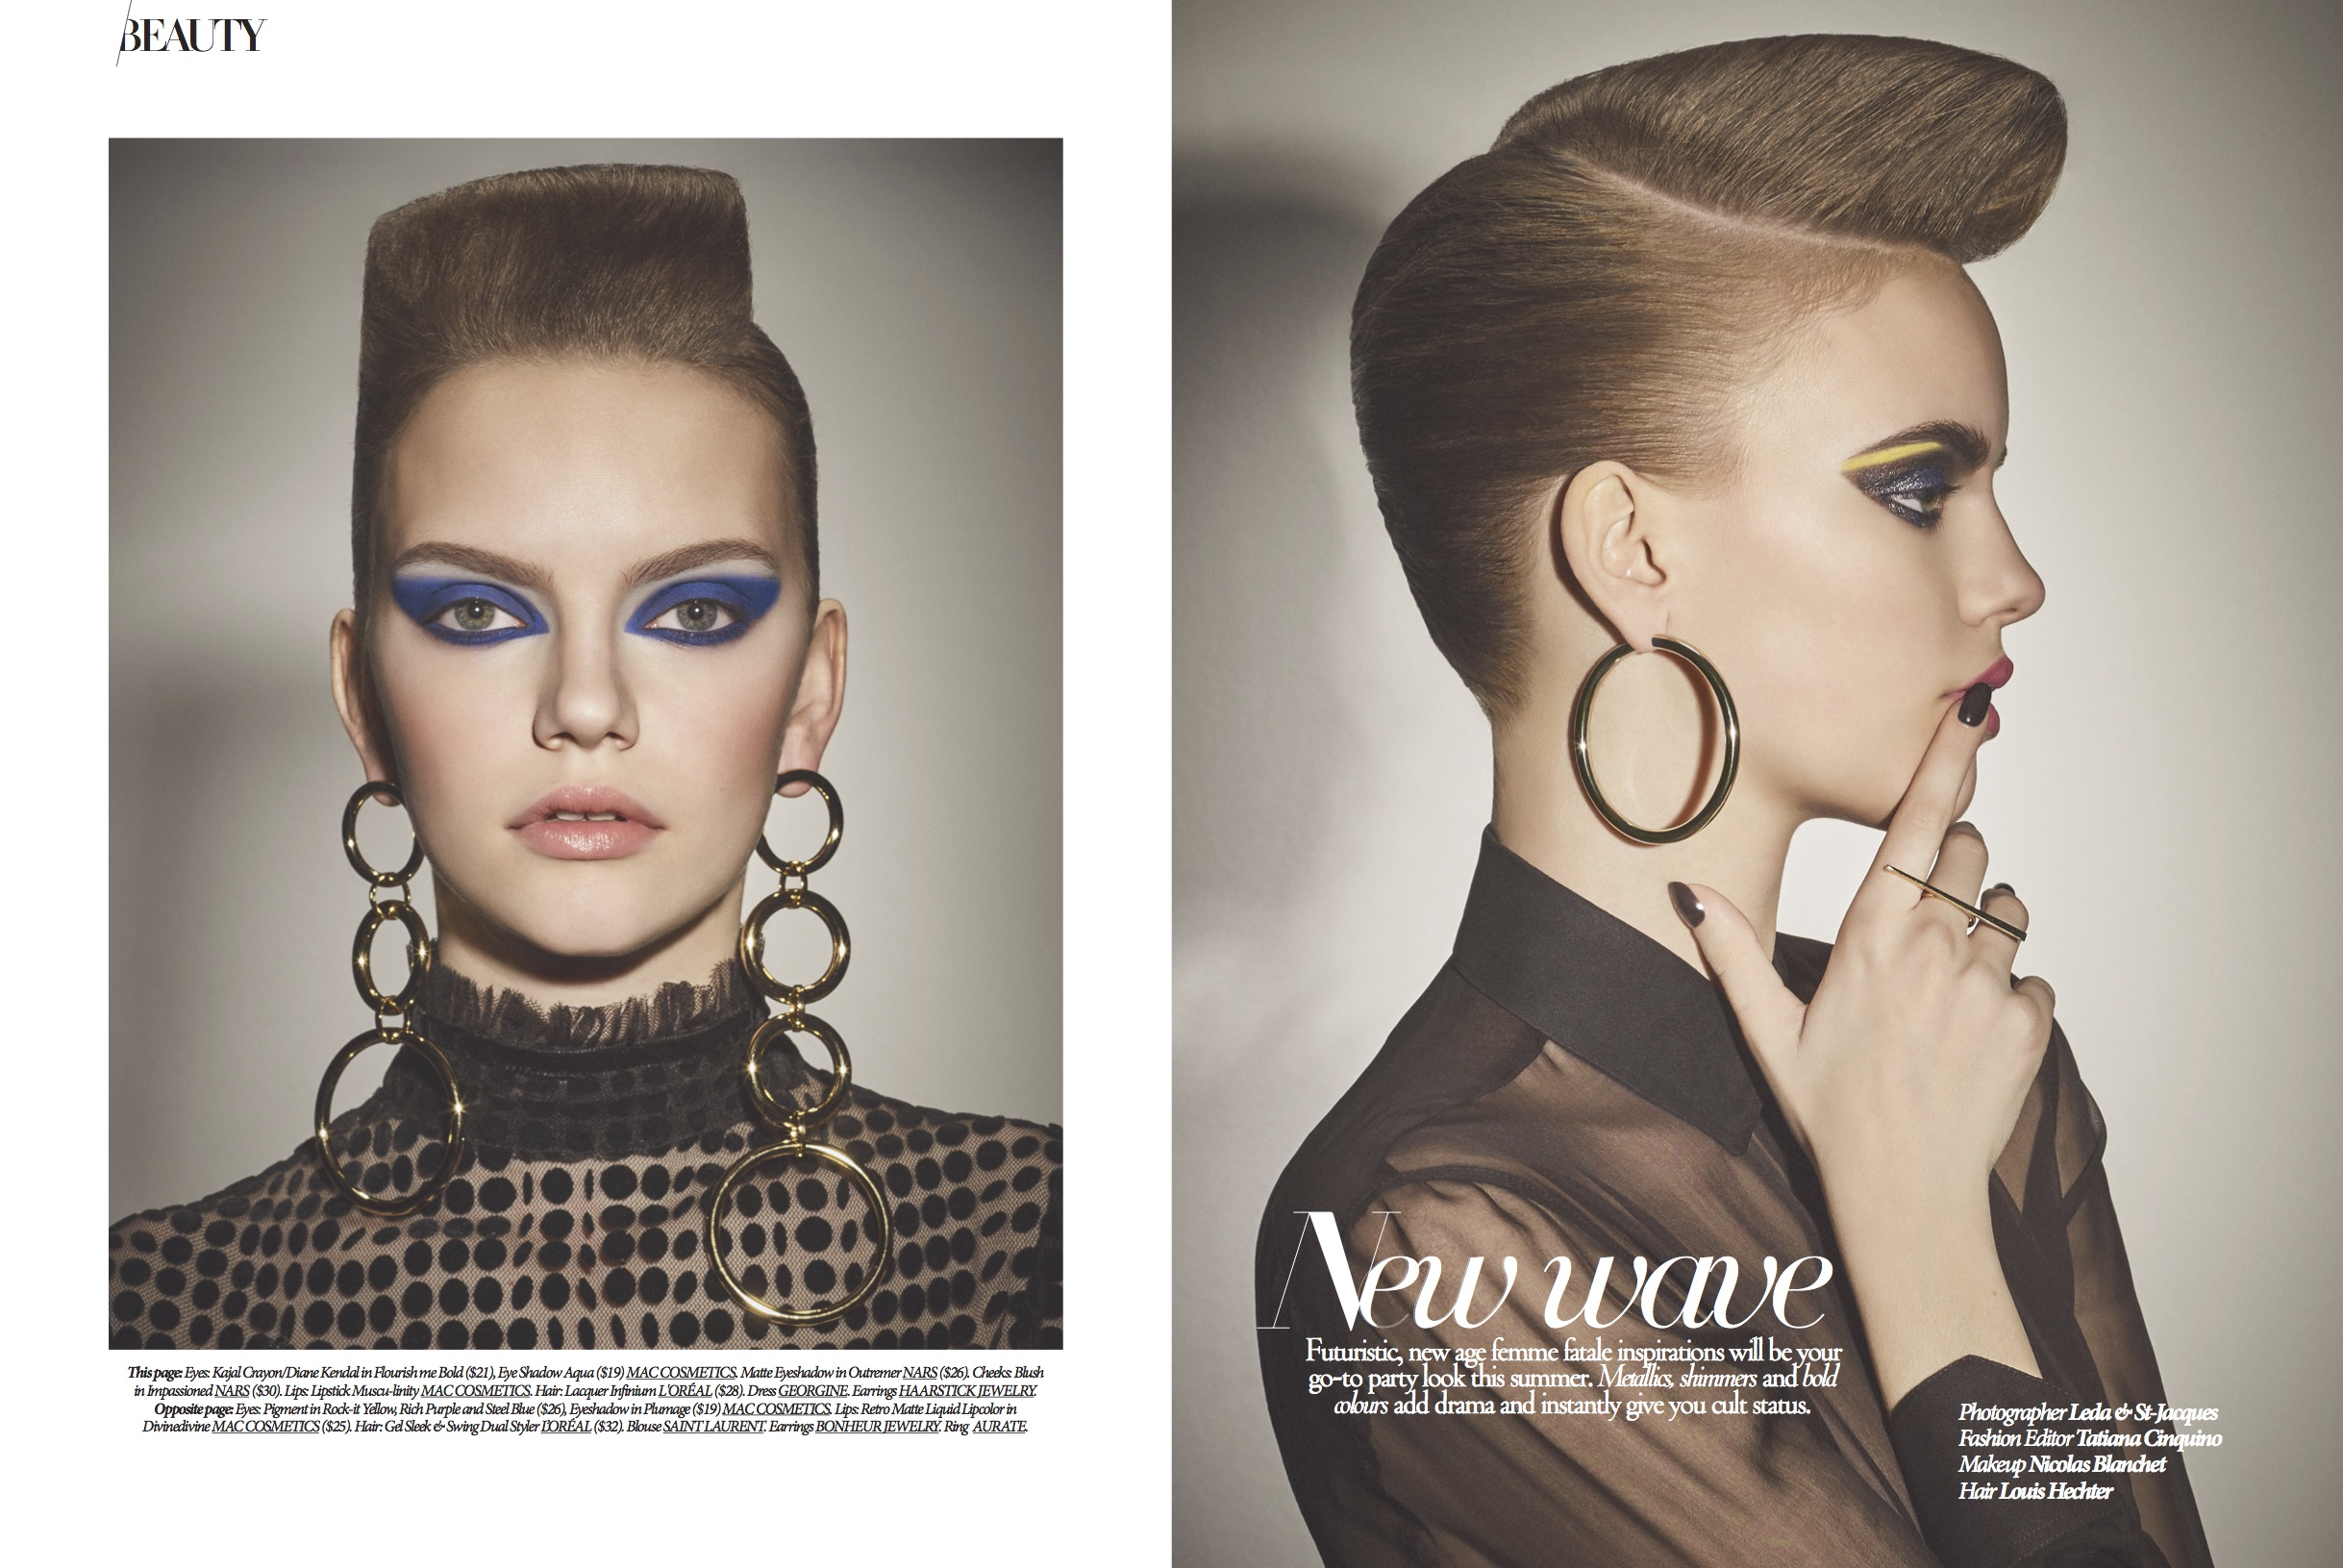 Beauty Editorial- New Wave page 1.jpg